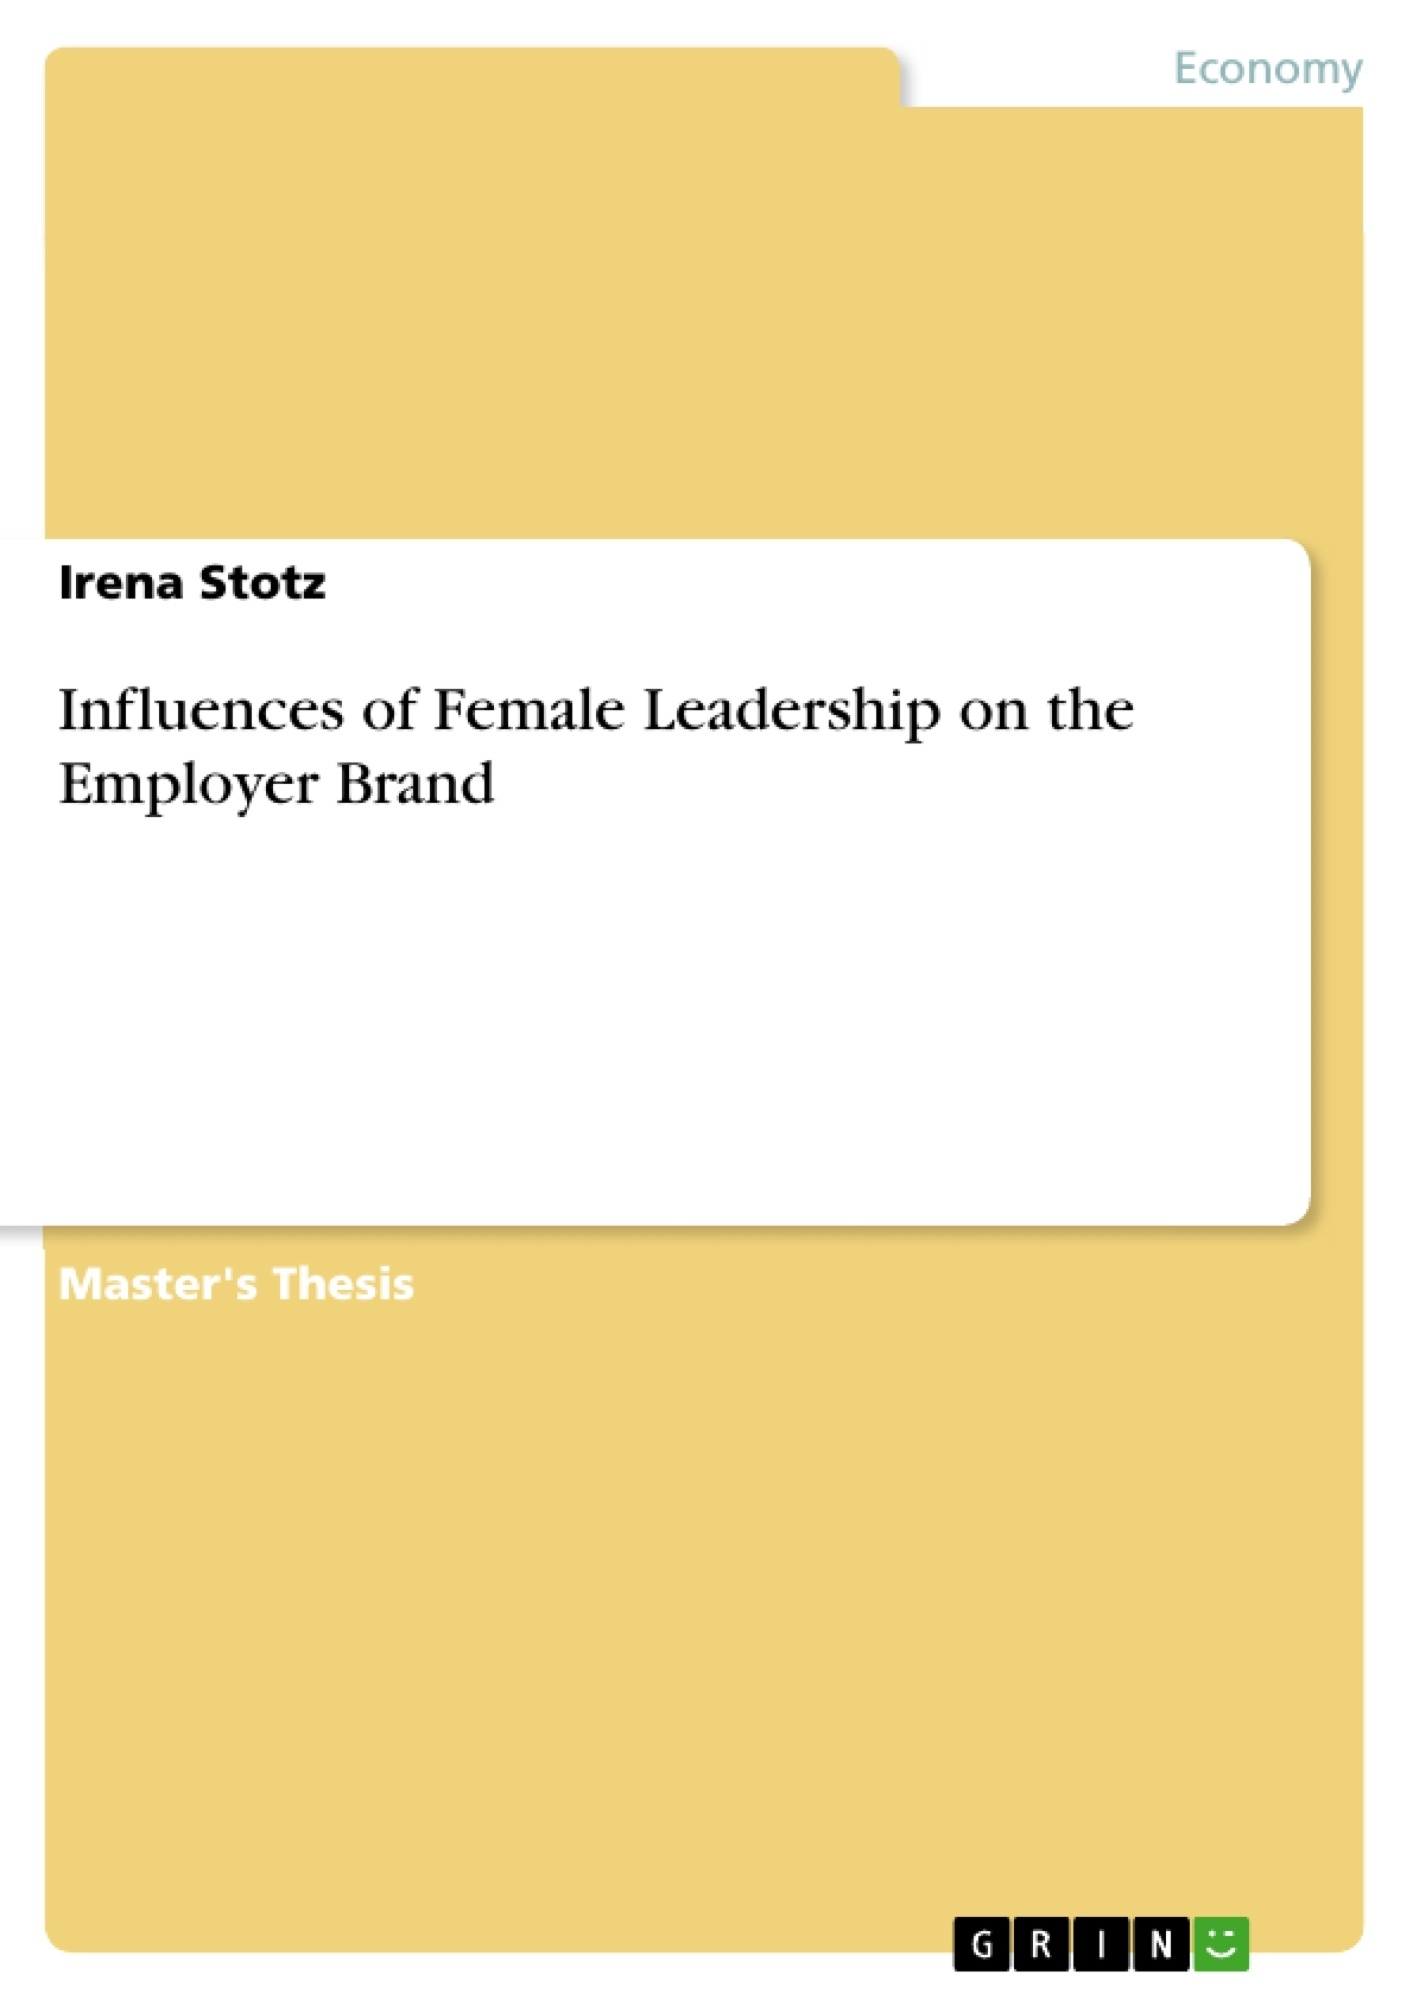 Title: Influences of Female Leadership on the Employer Brand